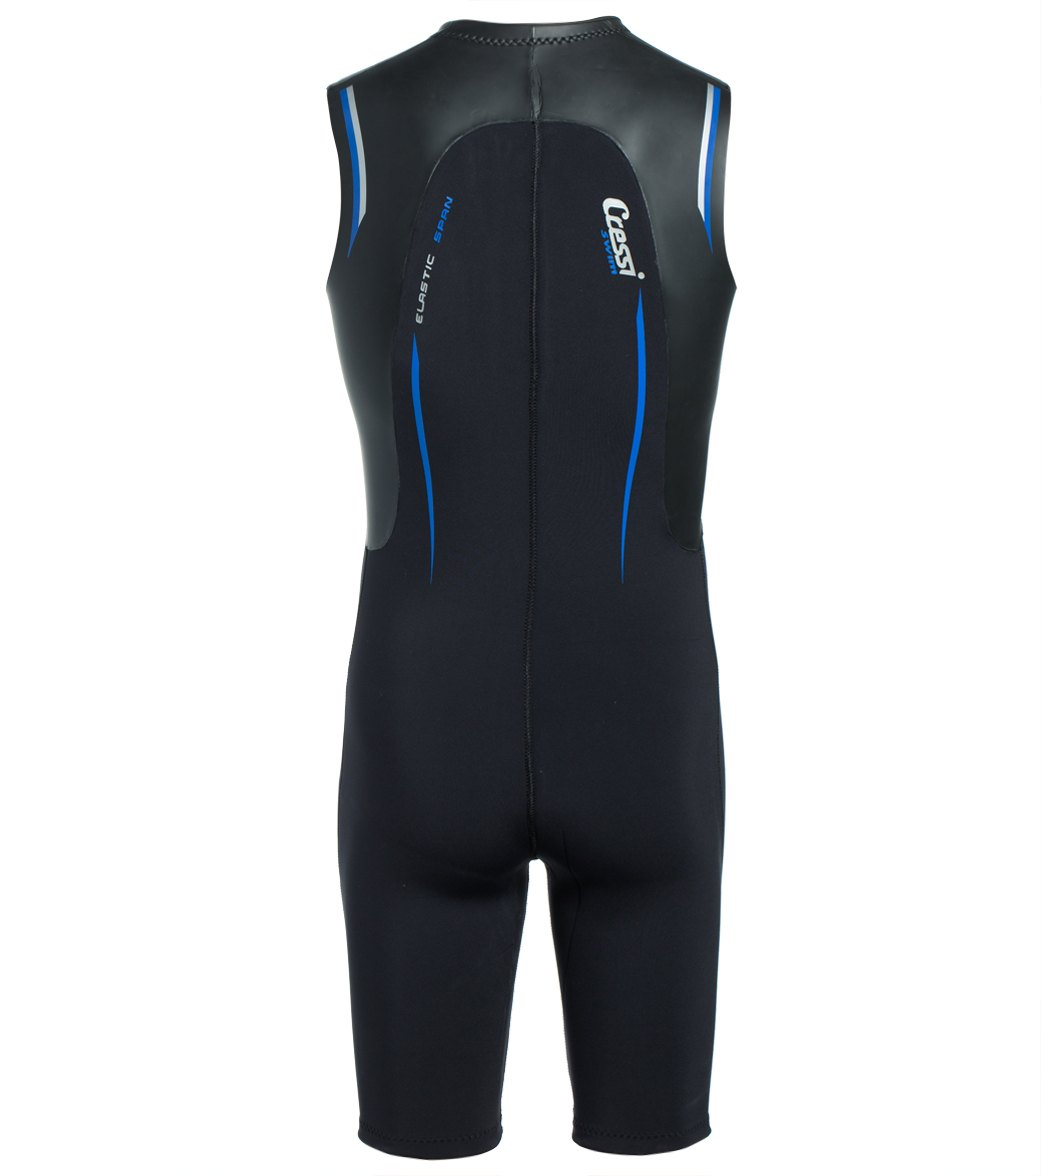 Cressi Termico Man 2mm Thermo Suit at SwimOutlet.com - Free Shipping 2142de3b0